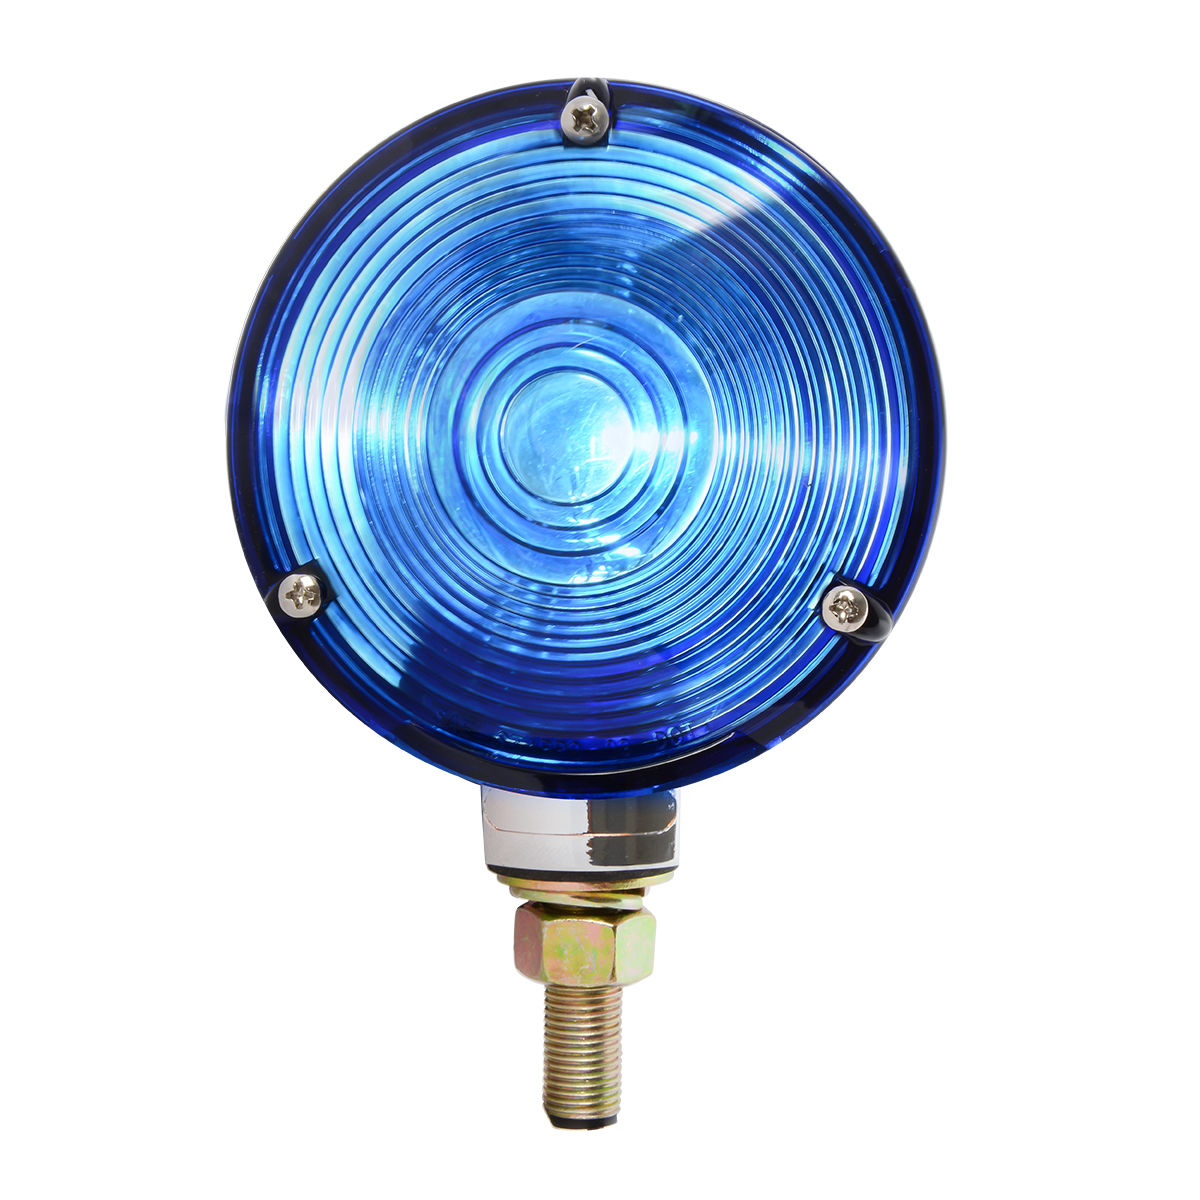 "#80503 4"" Single Face Pedestal Blue Light"